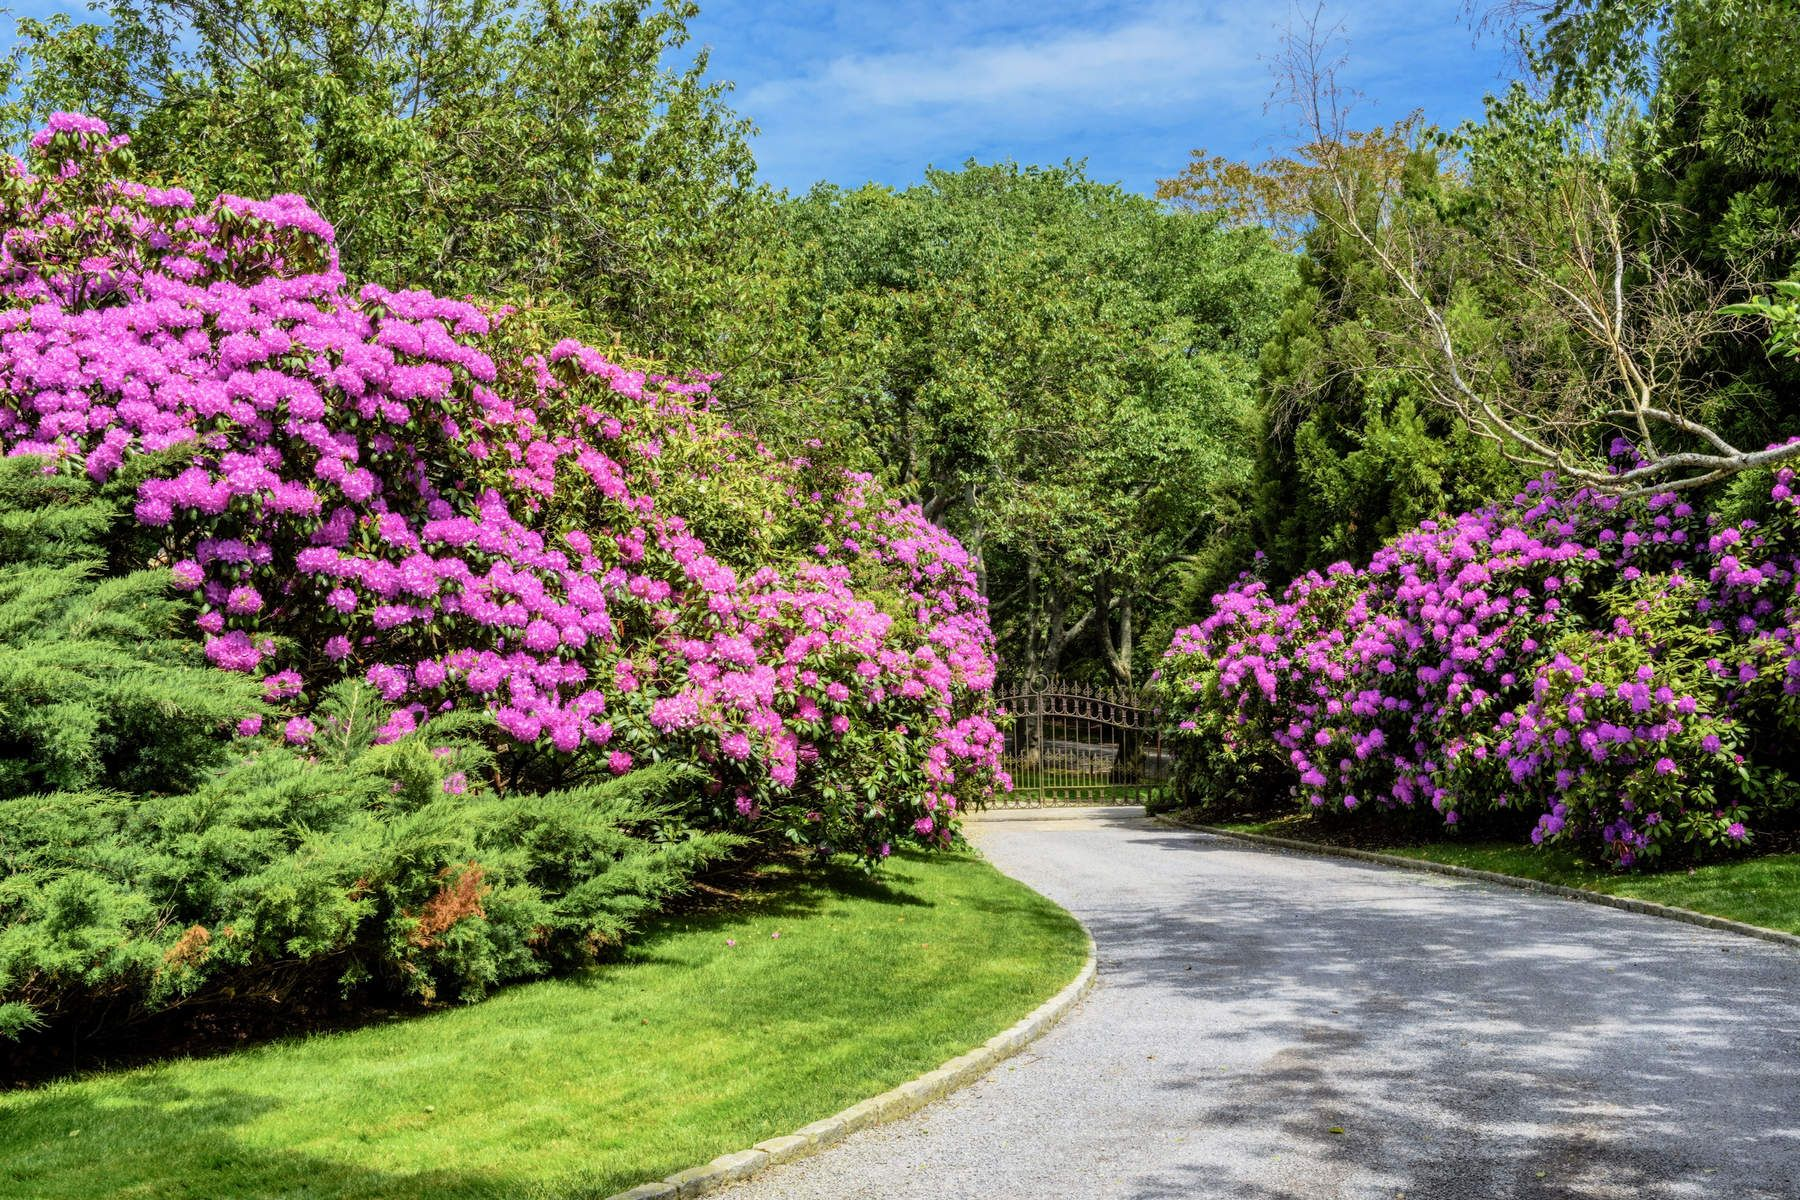 Additional photo for property listing at EAST HAMPTON FURTHER LANE ESTATE AREA 189 Further Lane East Hampton, New York 11937 United States